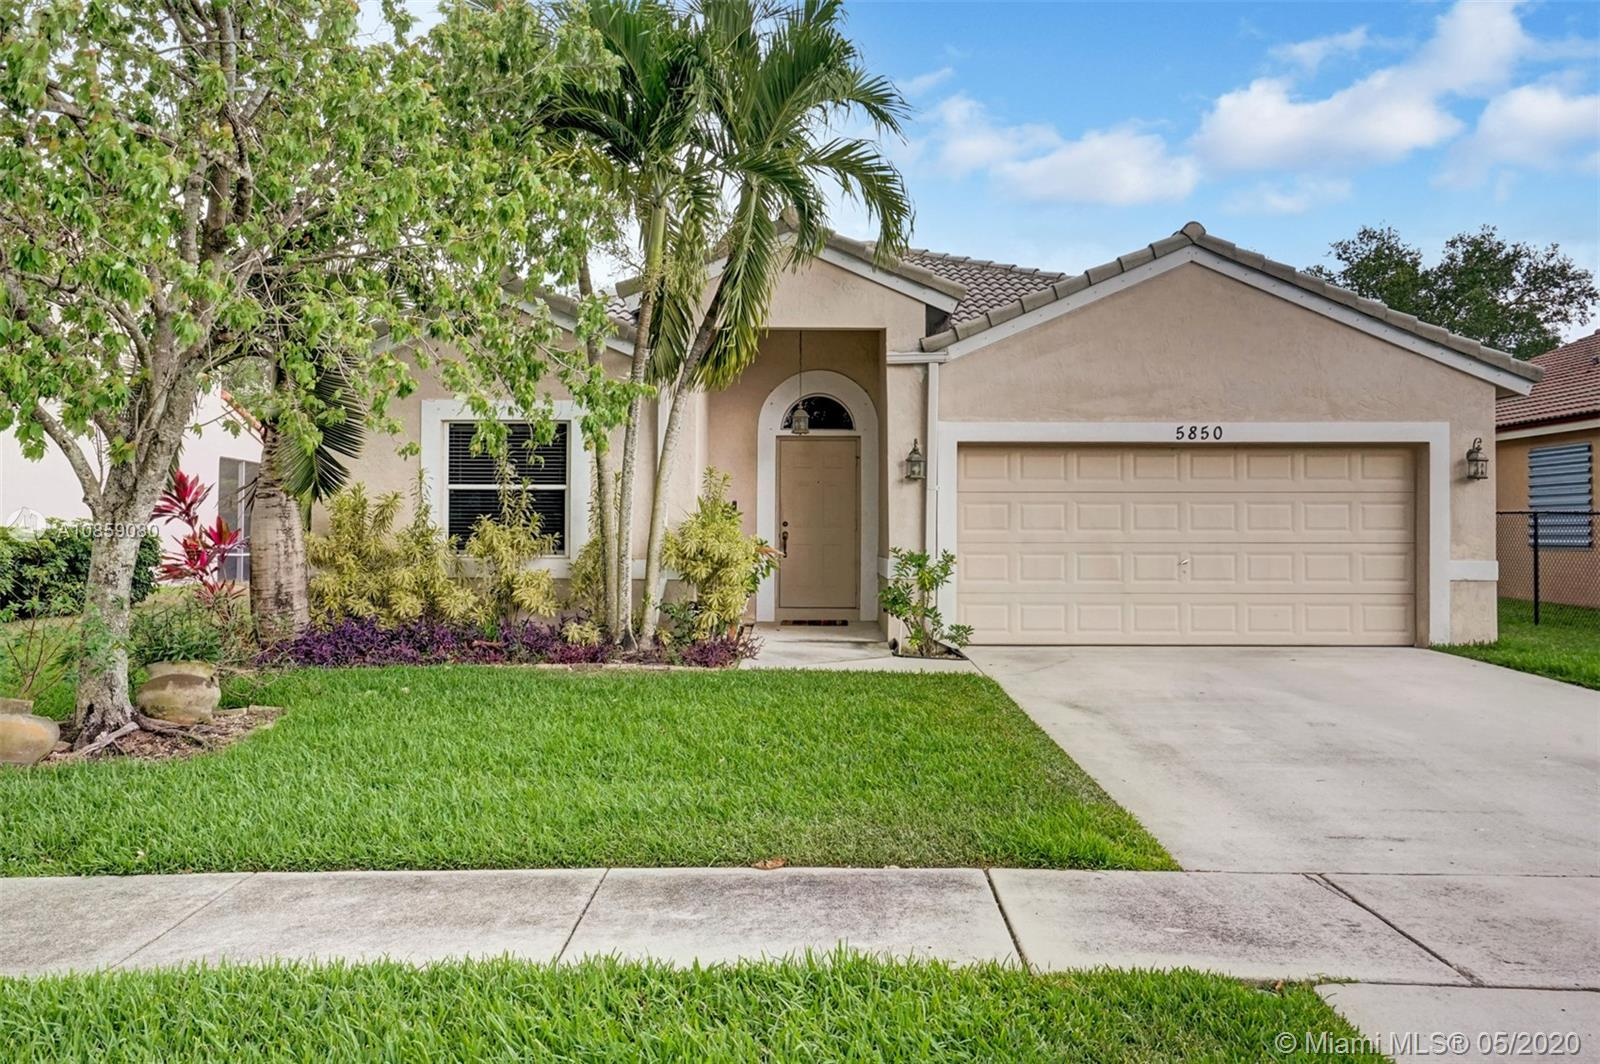 5850 SW 102nd Ave, Cooper City, Florida